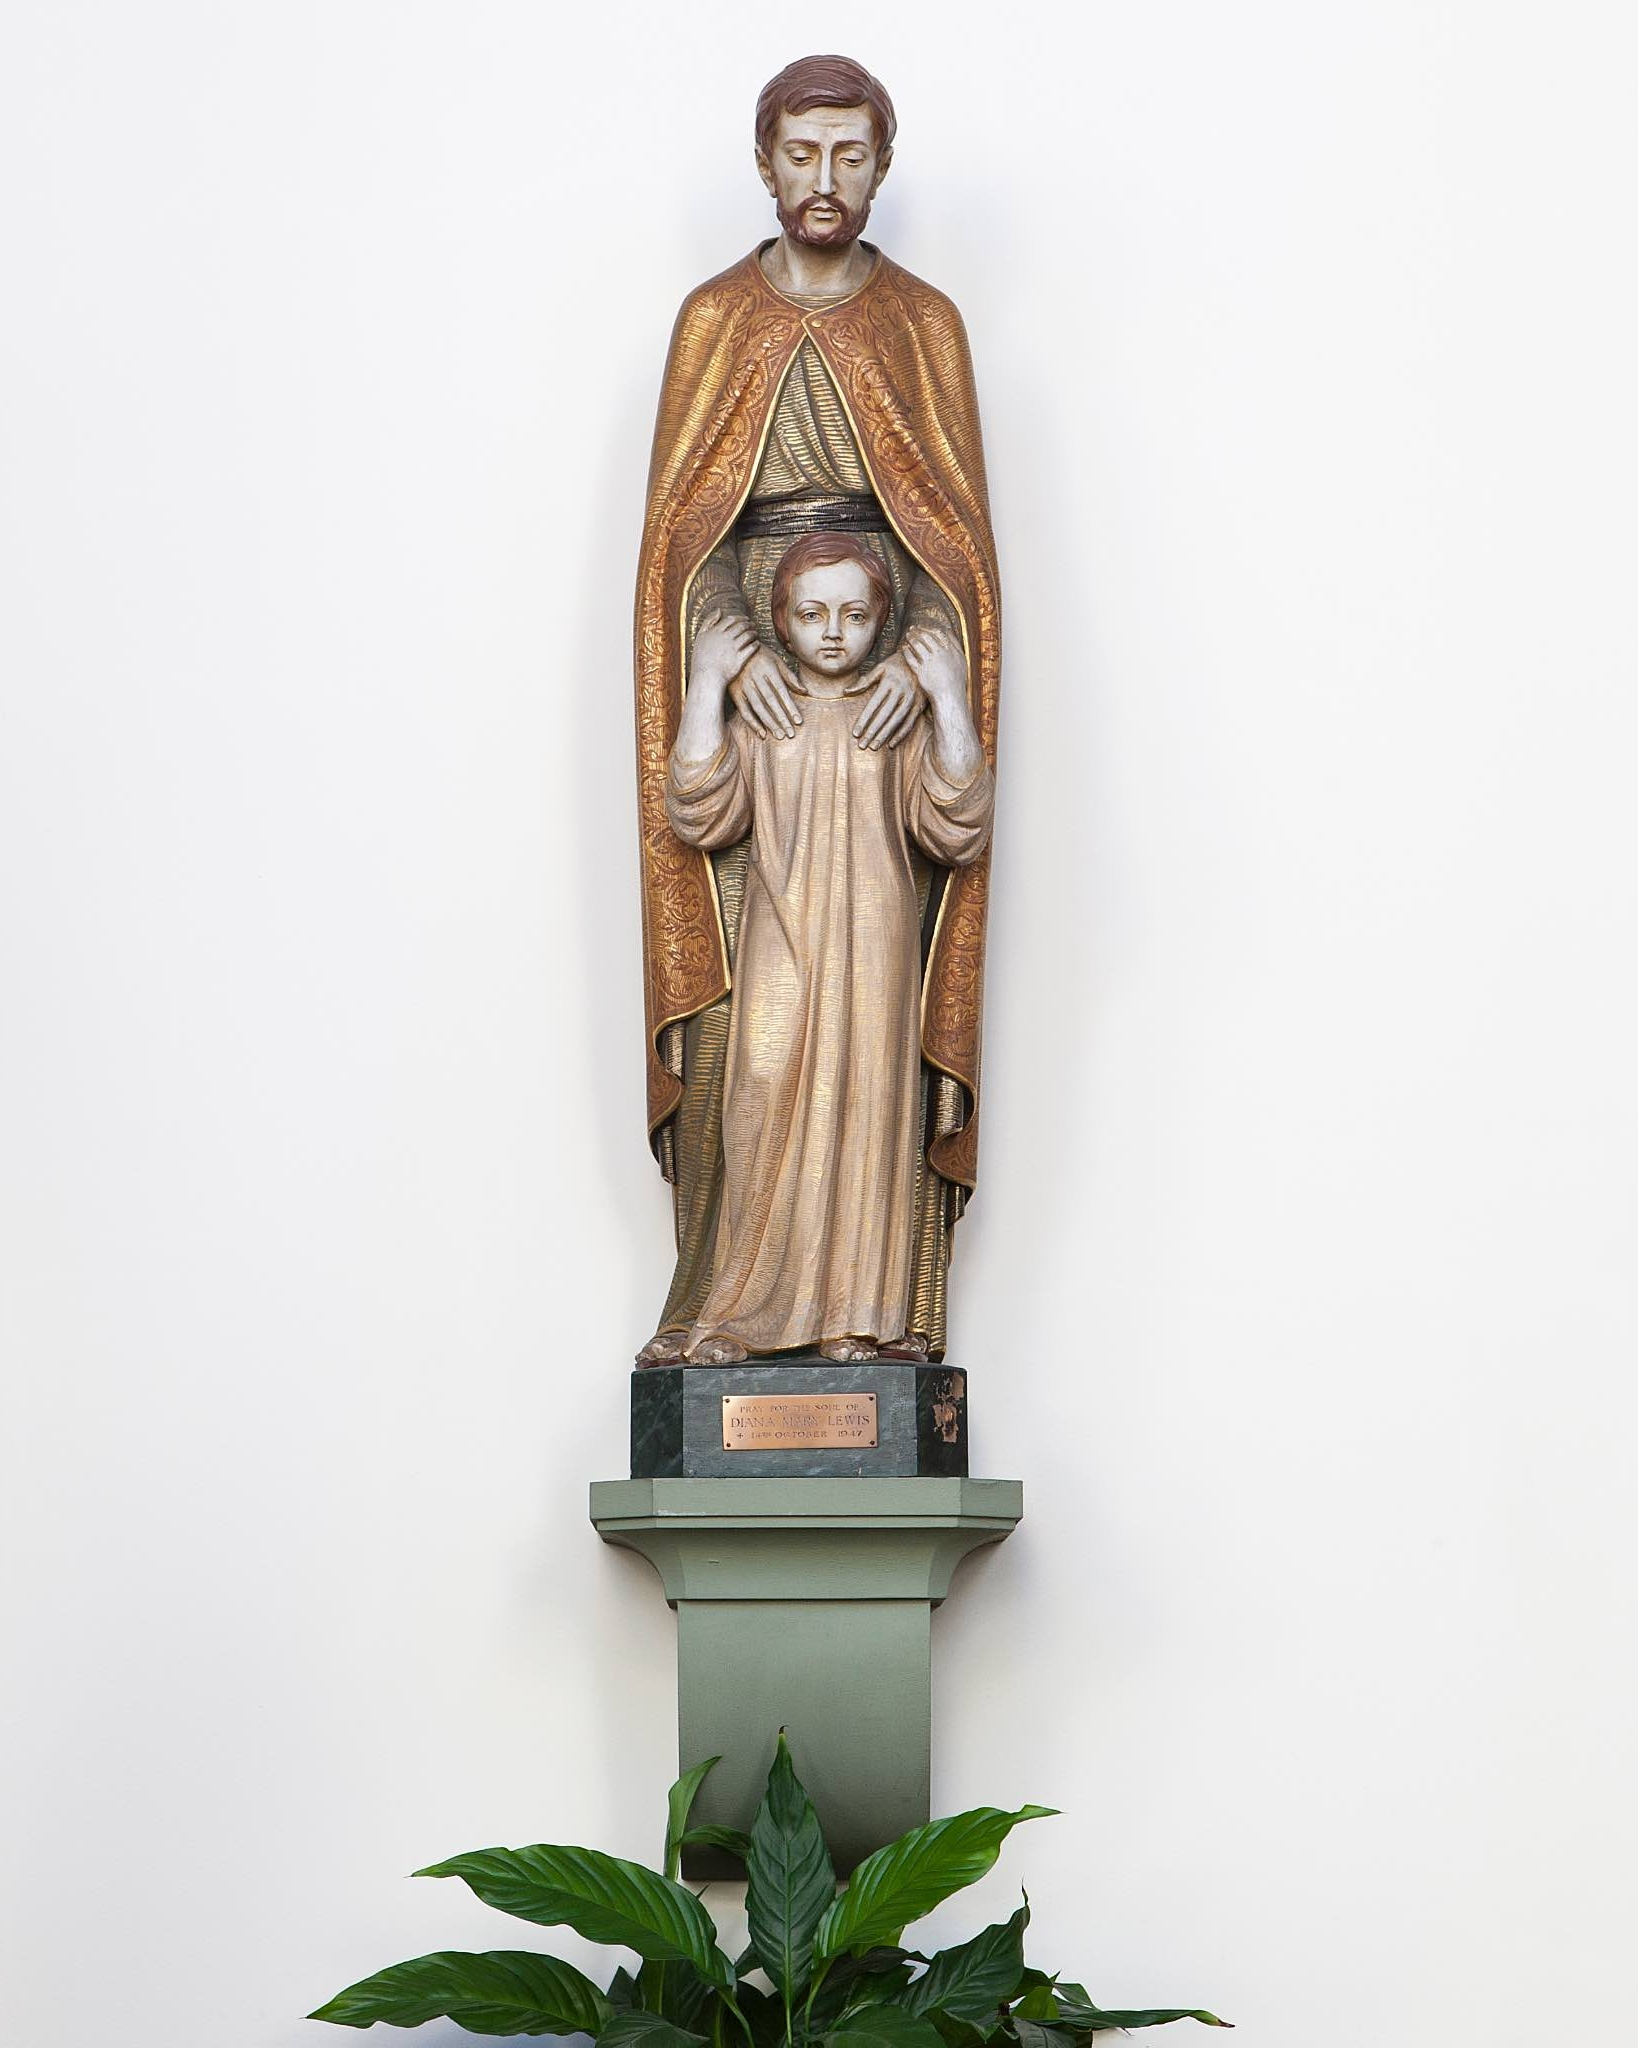 St. Joseph and the Boy Jesus - This, the third of the statues given in memory of Diana Mary Lewis, portrays Our Lord as a young boy, in the protective care of his foster father.  The Solemnity of St. Joseph is celebrated on March 19th and the memorial of St. Joseph the Worker on May 1st.